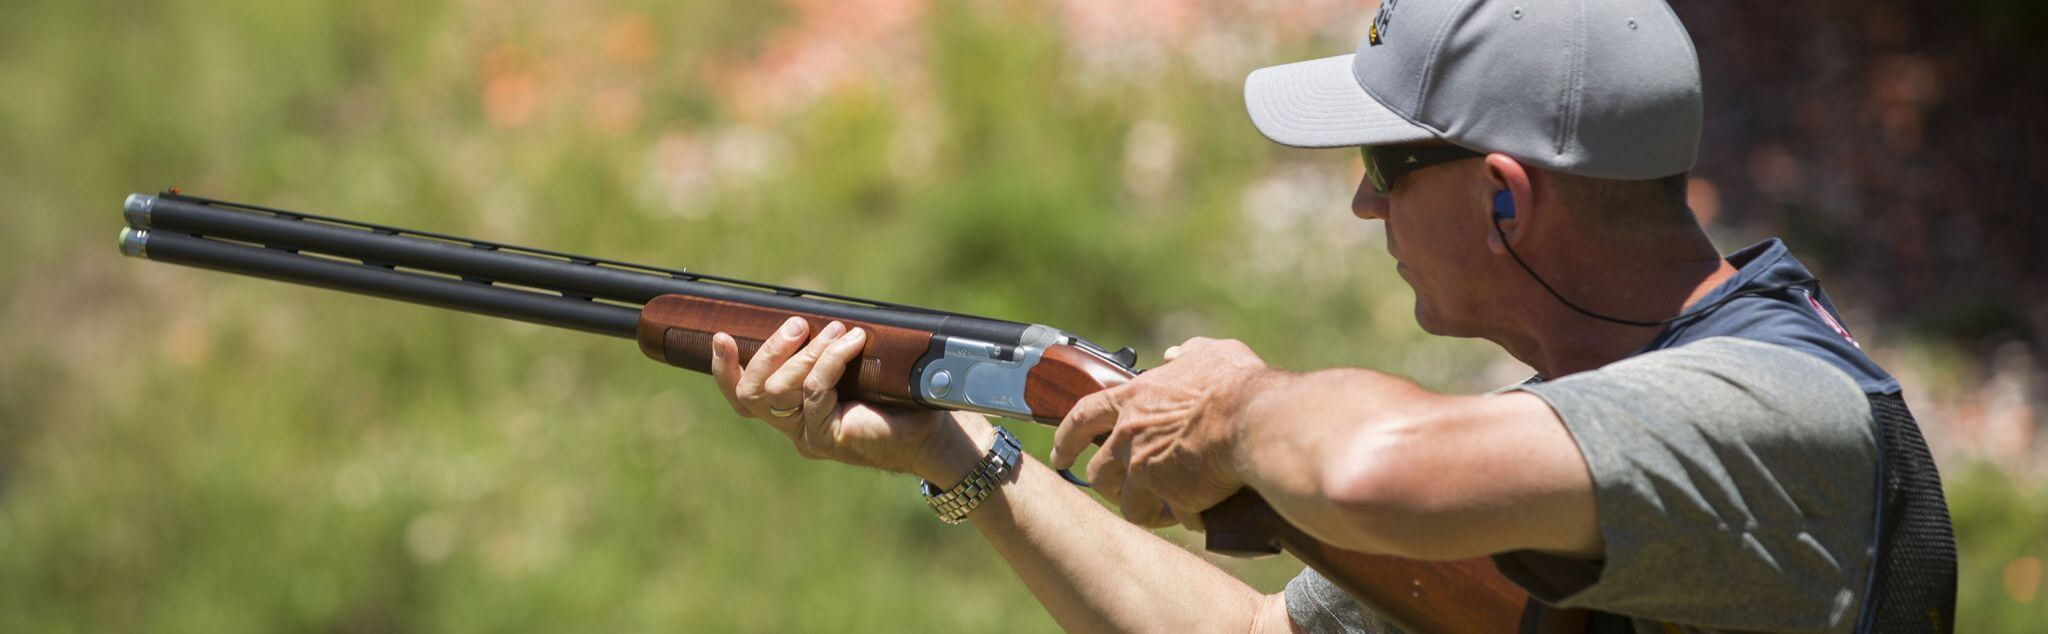 Clay Pigeon Shooting in Jersey (Town)